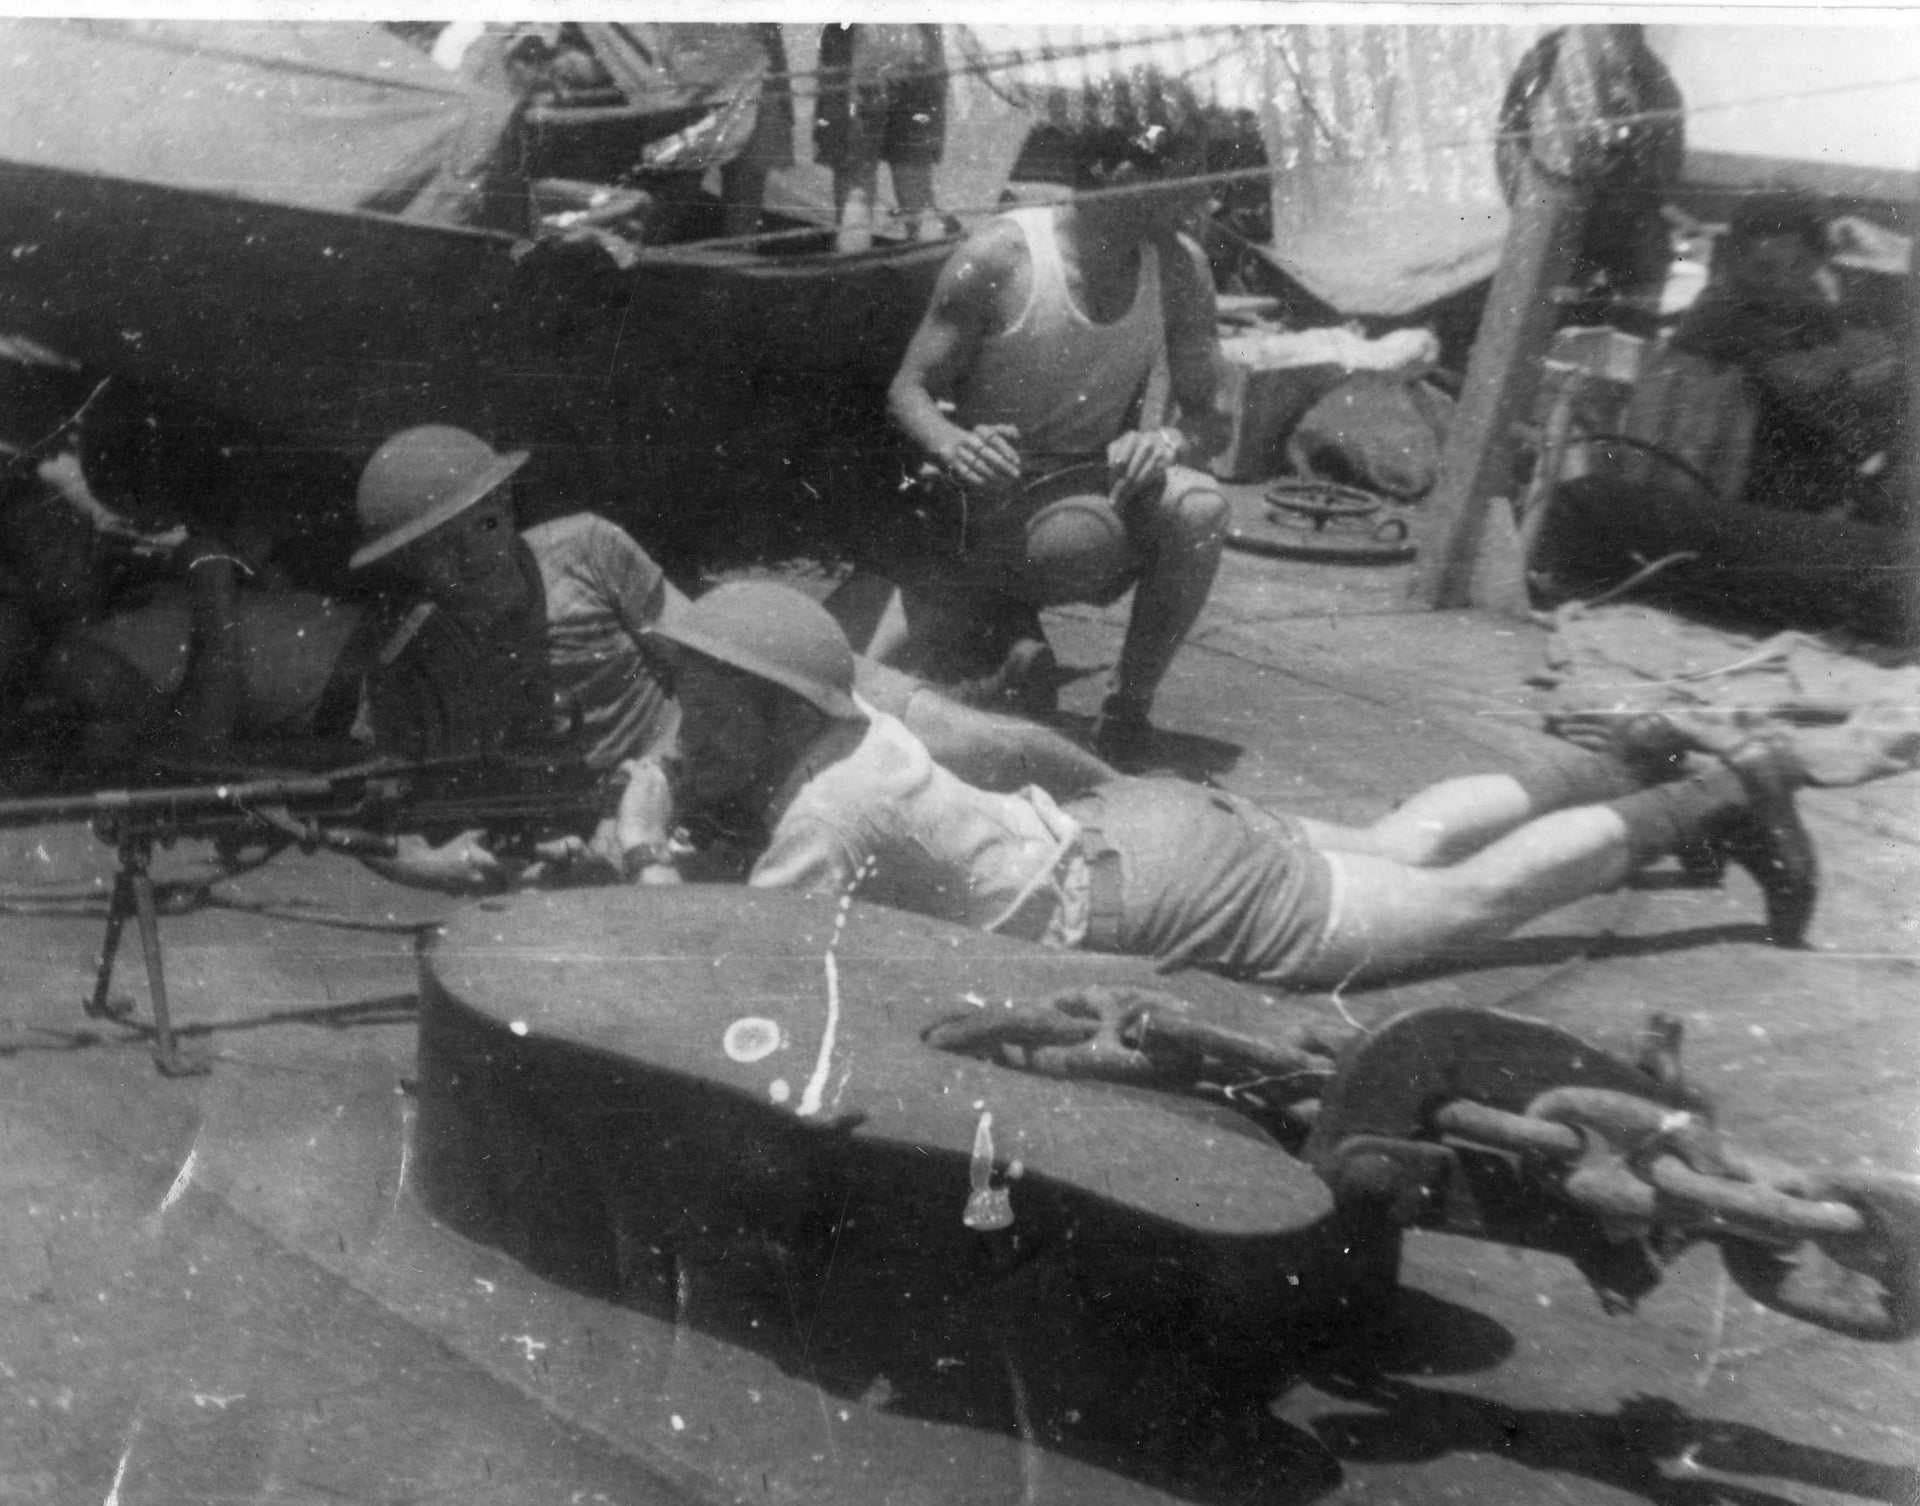 On the deck of the Altalena. According to Feldman, the ship had enough guns and ammunition for 5,000 more people.